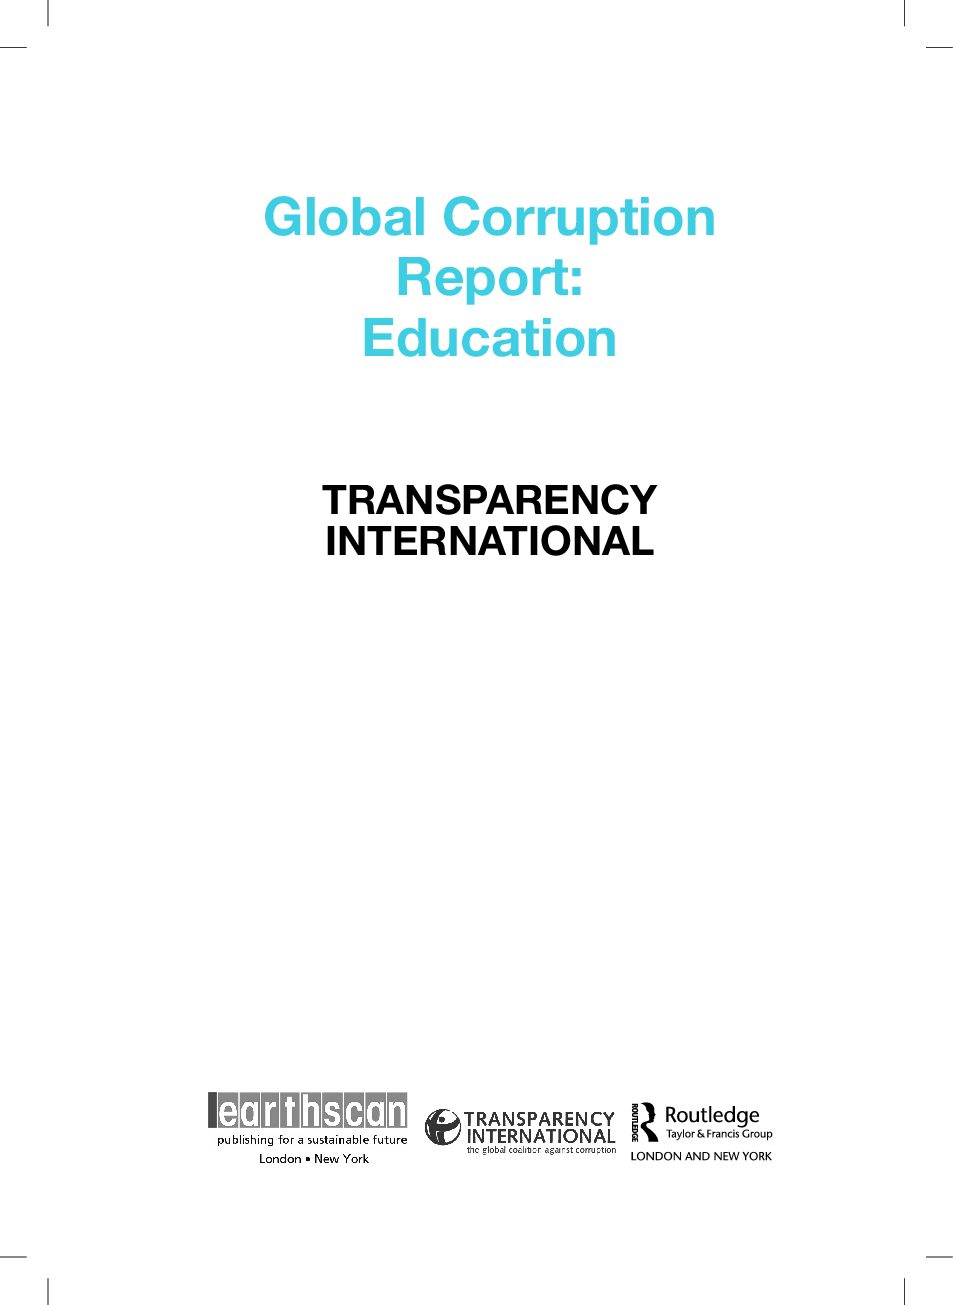 Global Corruption Report 2013 Education